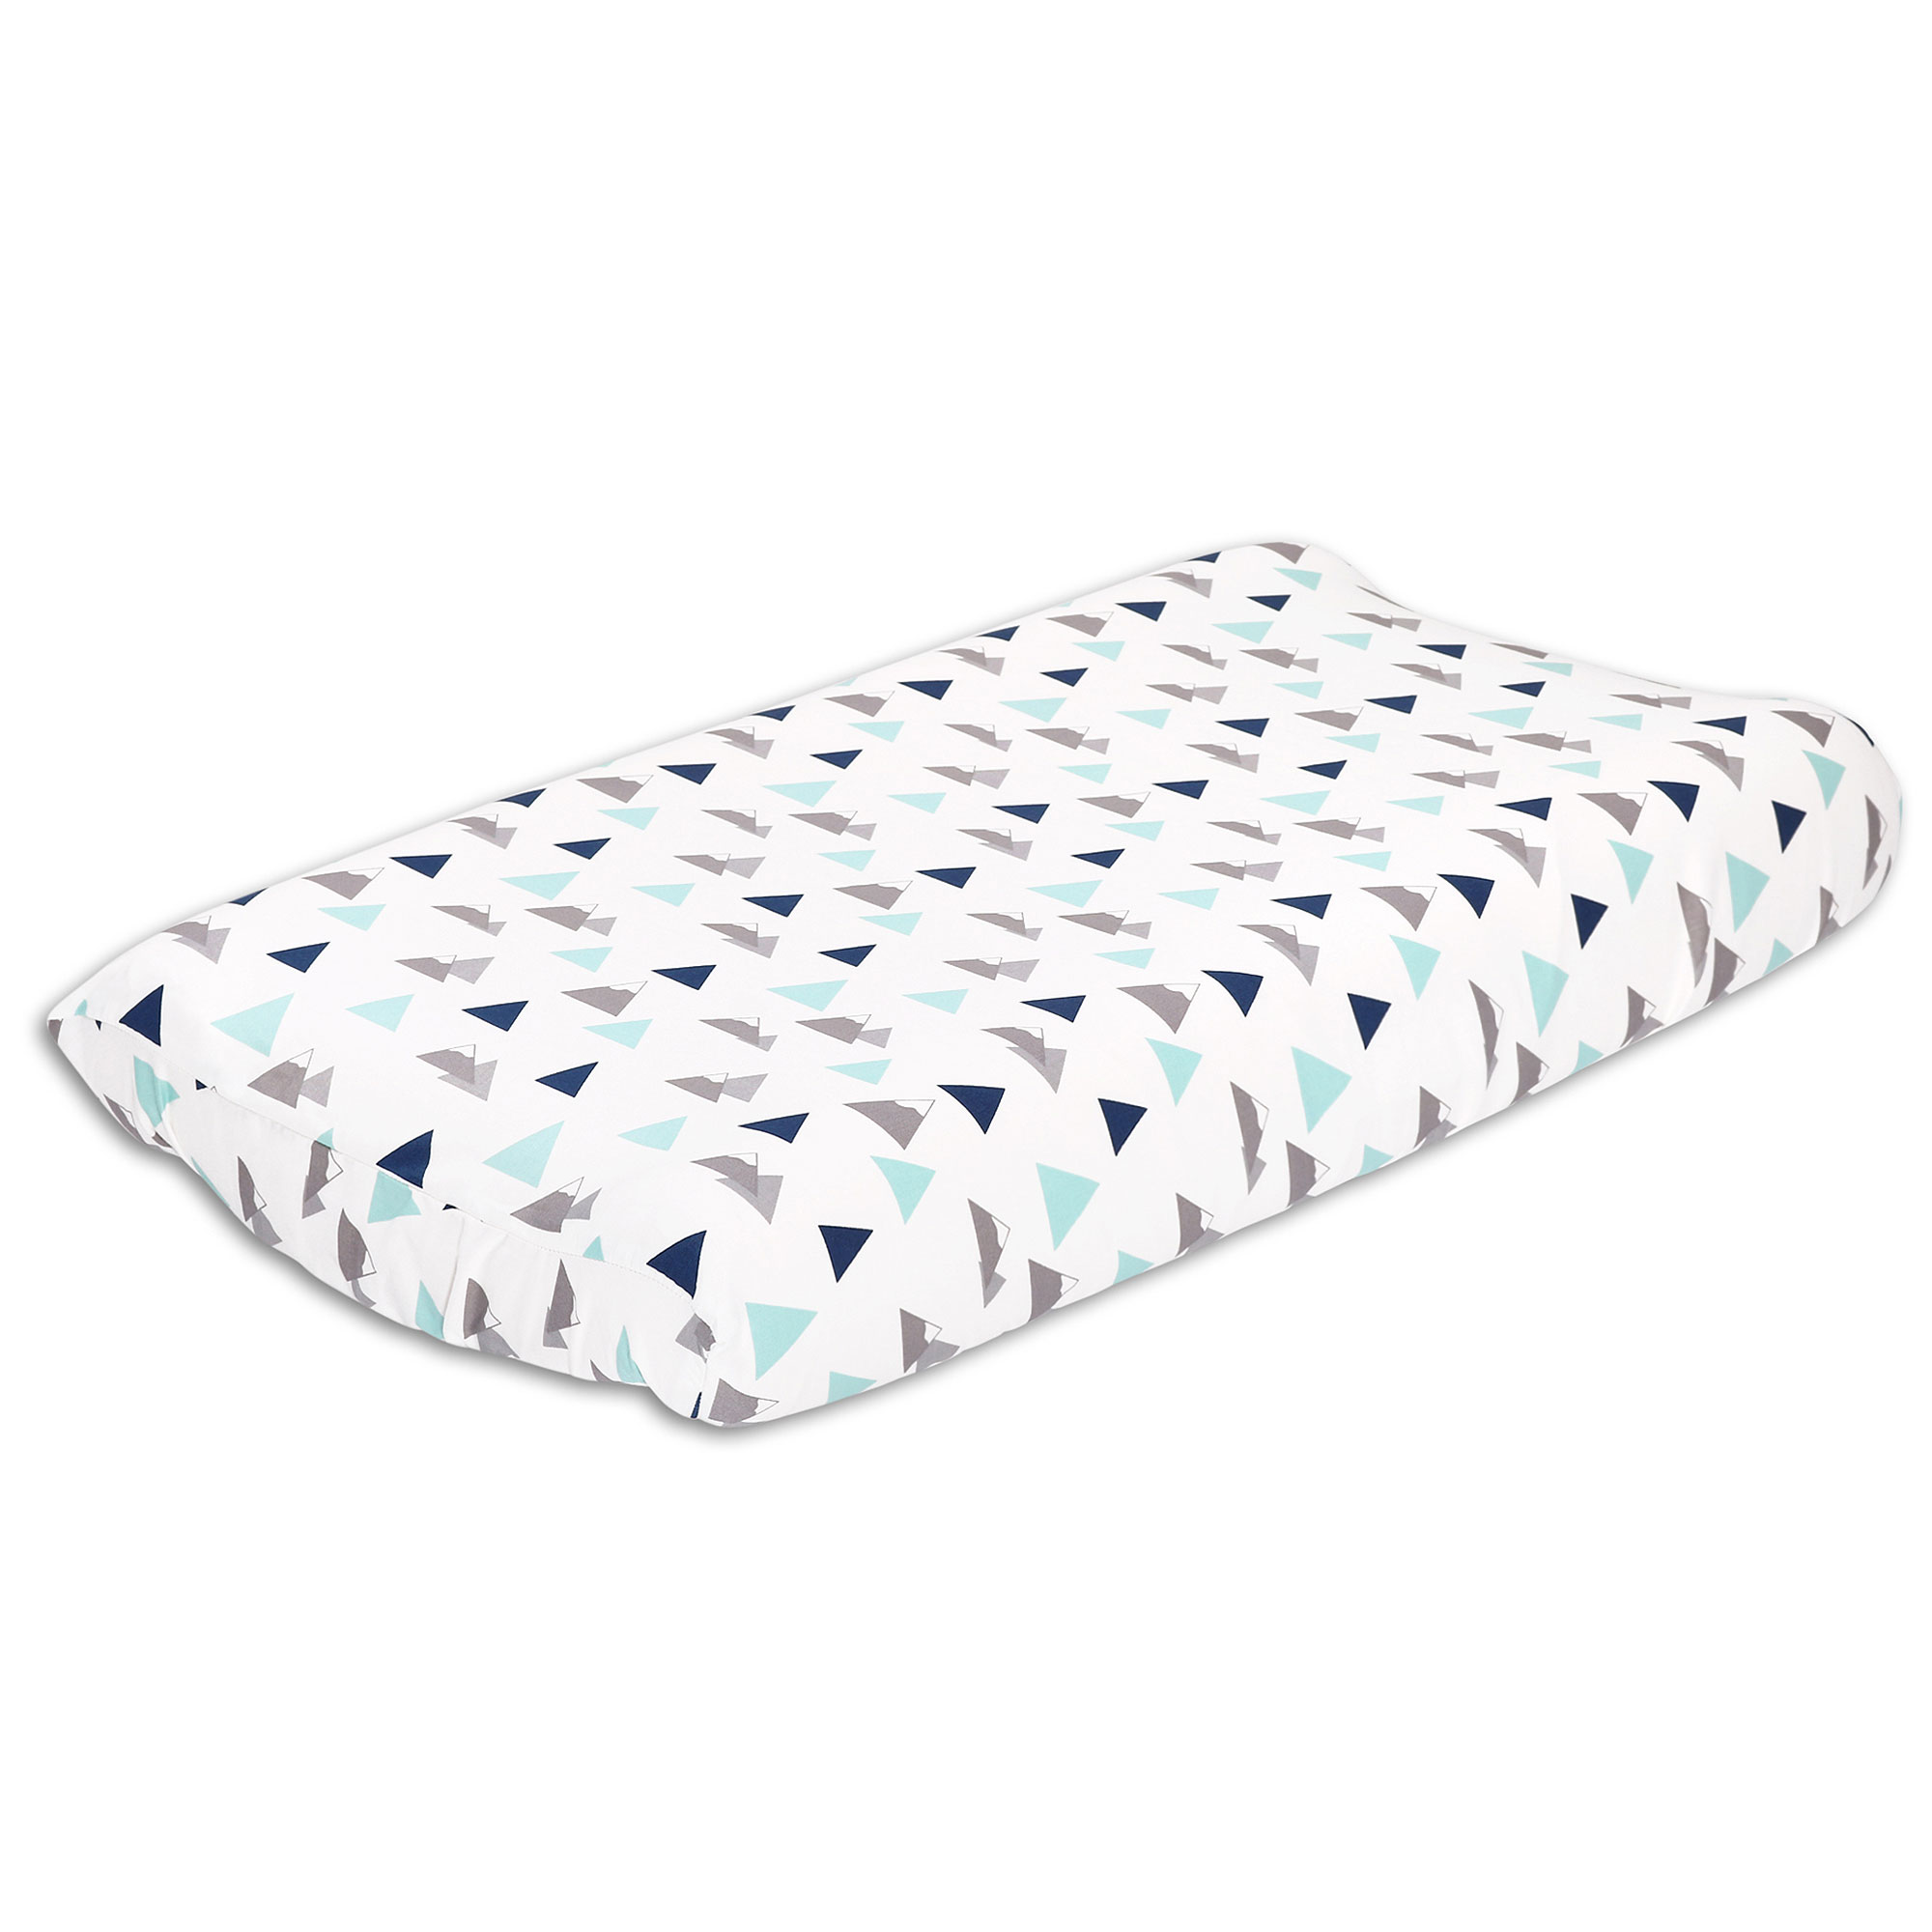 Woodland Trail Mountain Theme Changing Pad Cover Geometric by The Peanut Shell